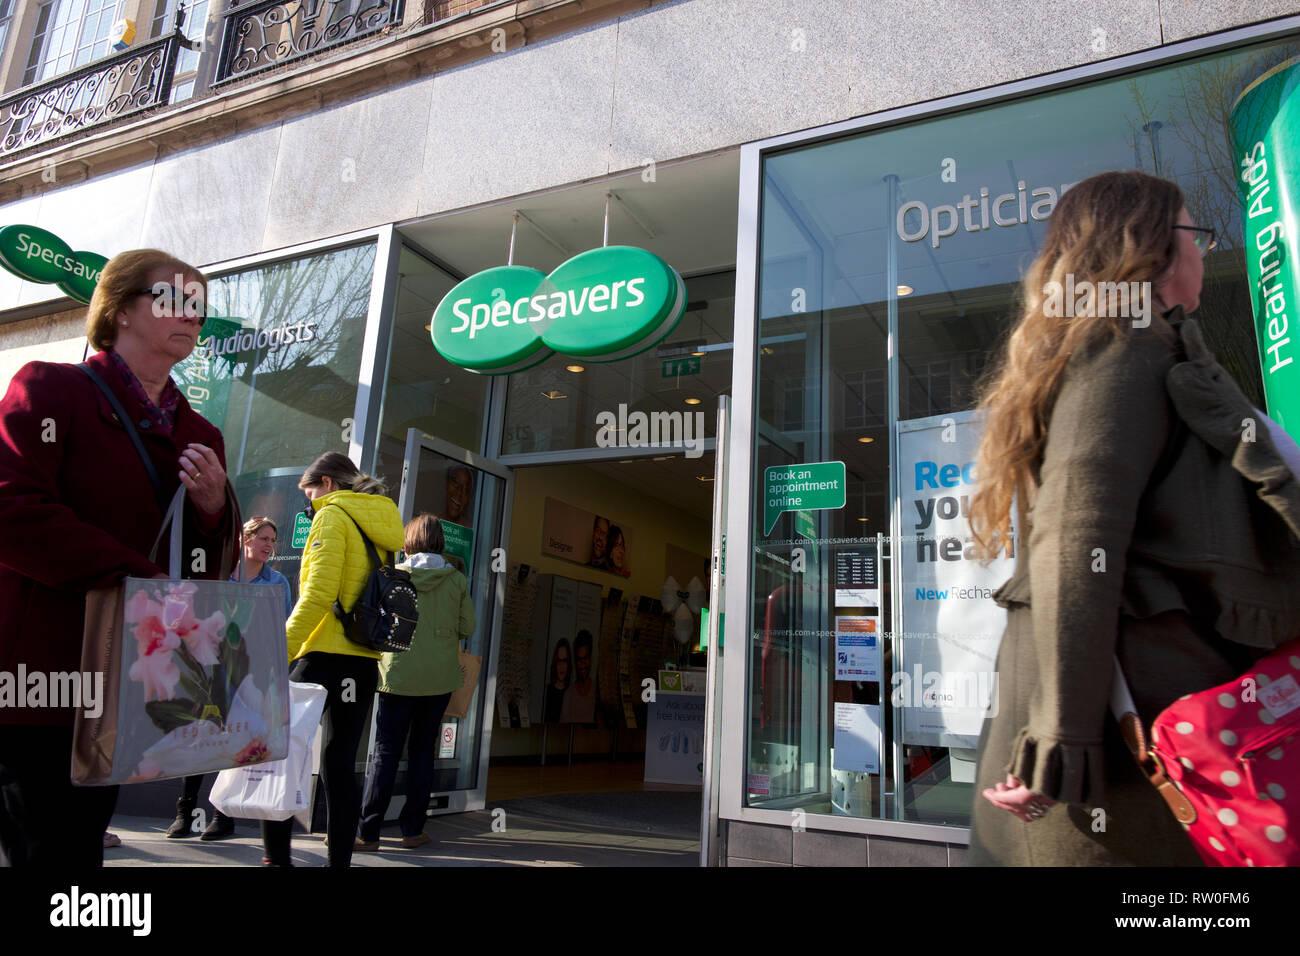 Specsavers branch UK Stock Photo